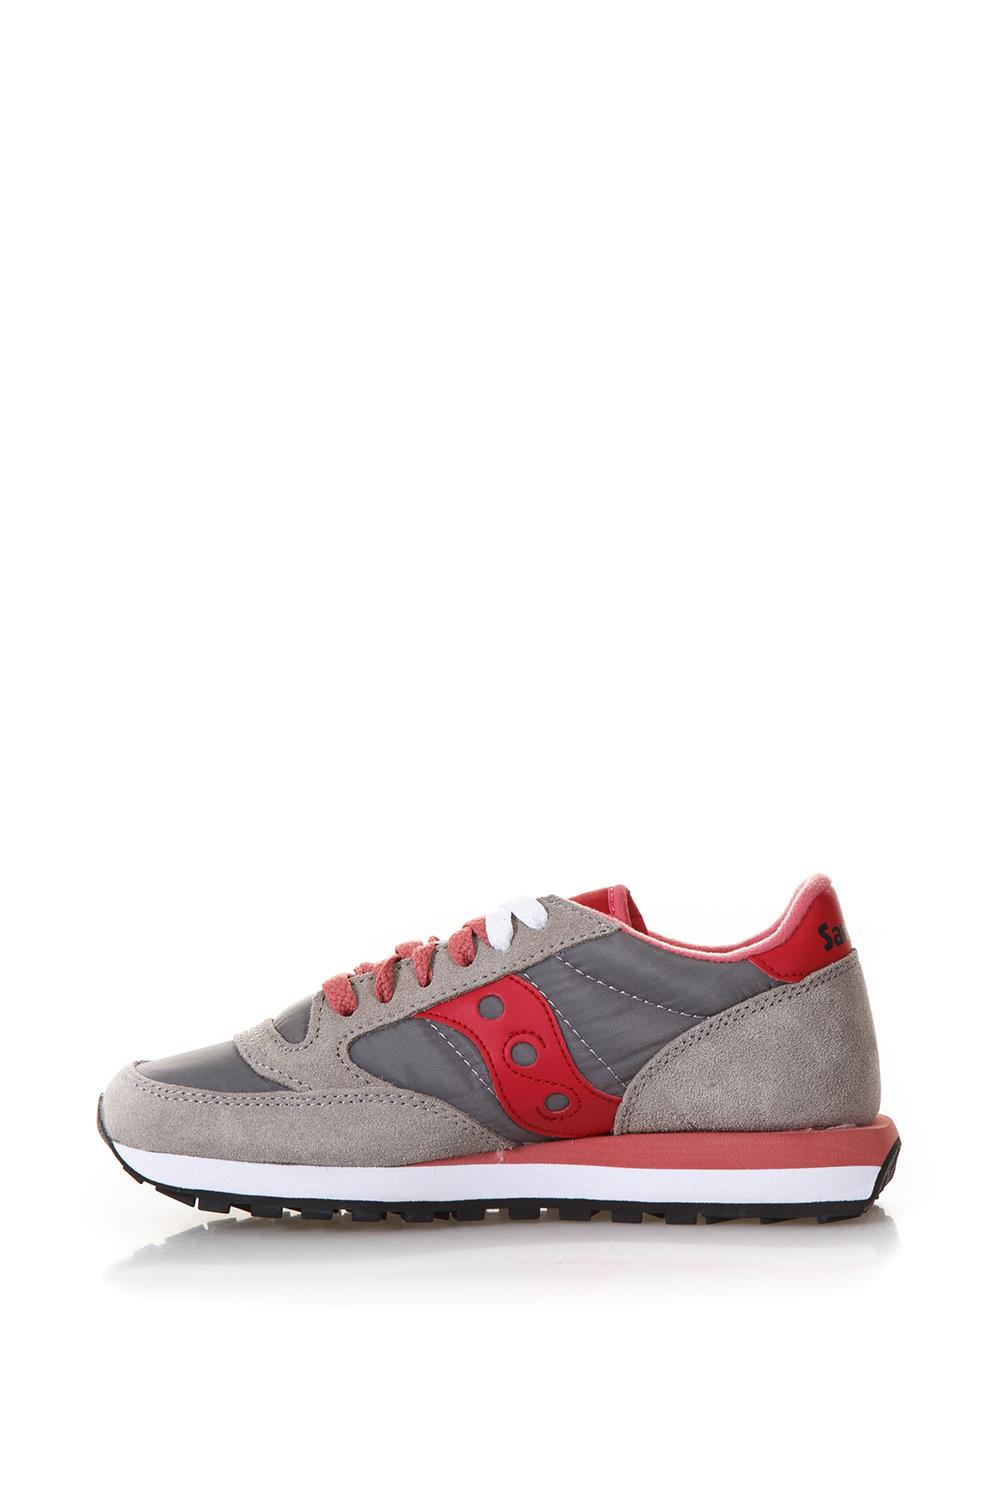 d603d6b26343 JAZZ SNEAKERS COLOR GRAY   RED SS 2018 - SAUCONY - Boutique Galiano